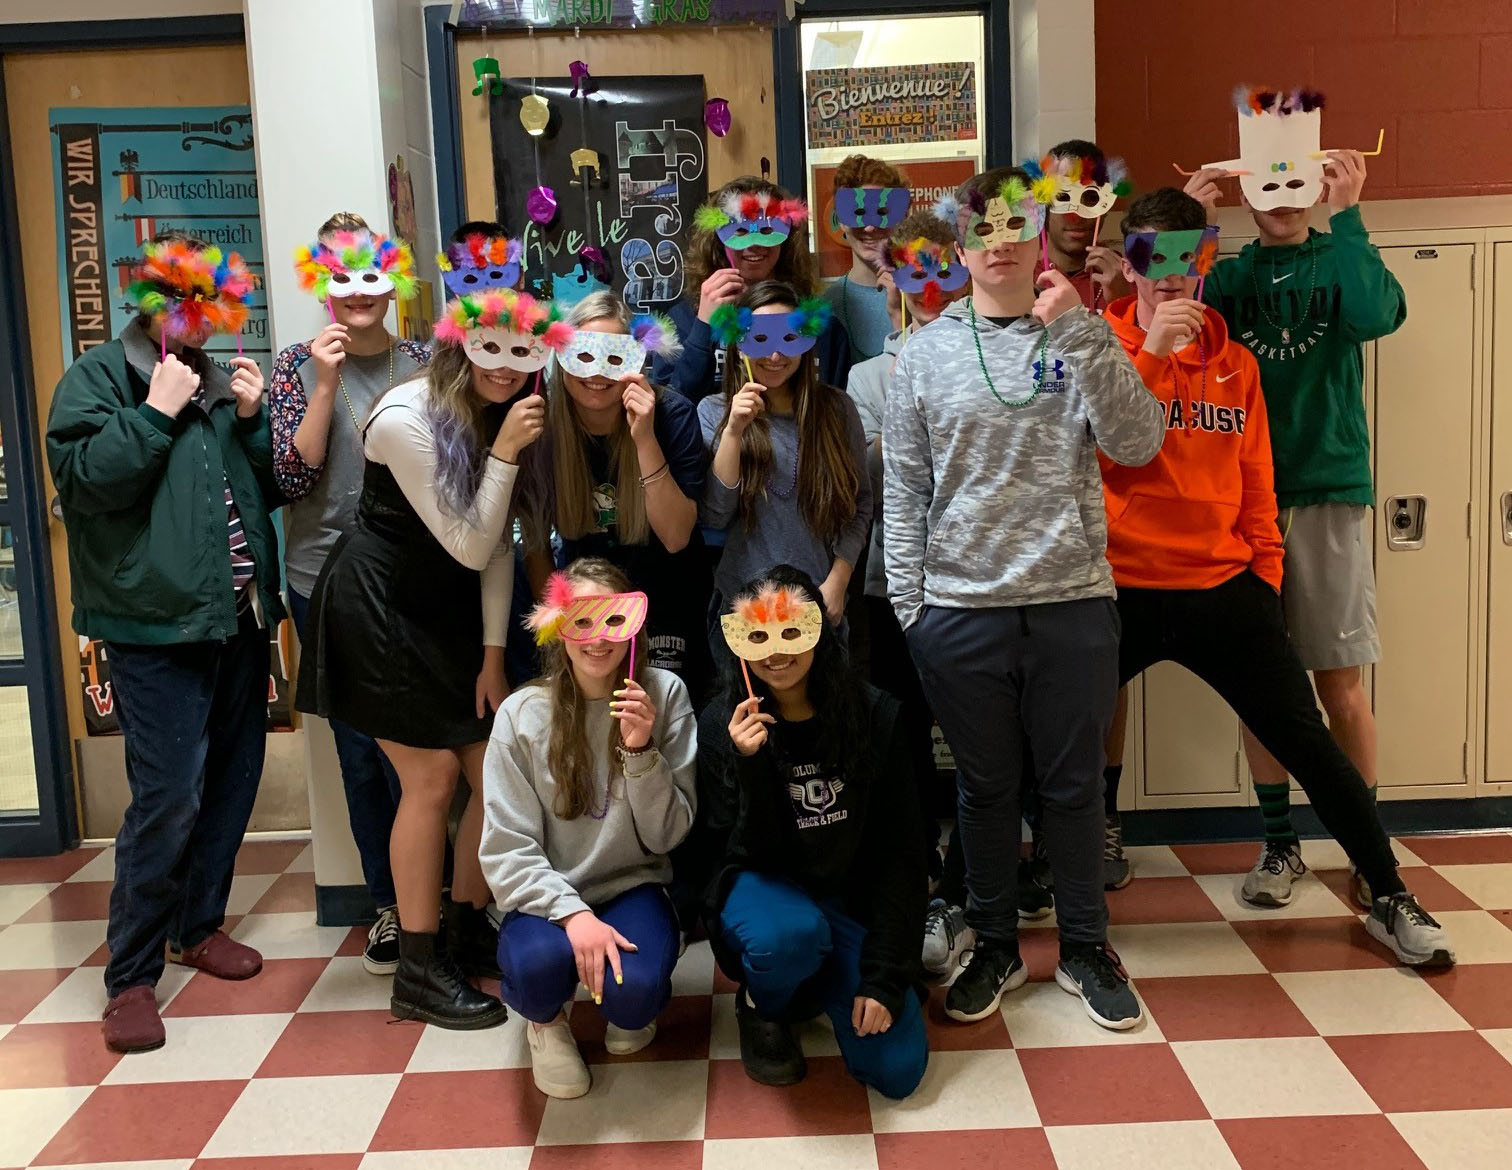 French students wearing Mardi Gras masks